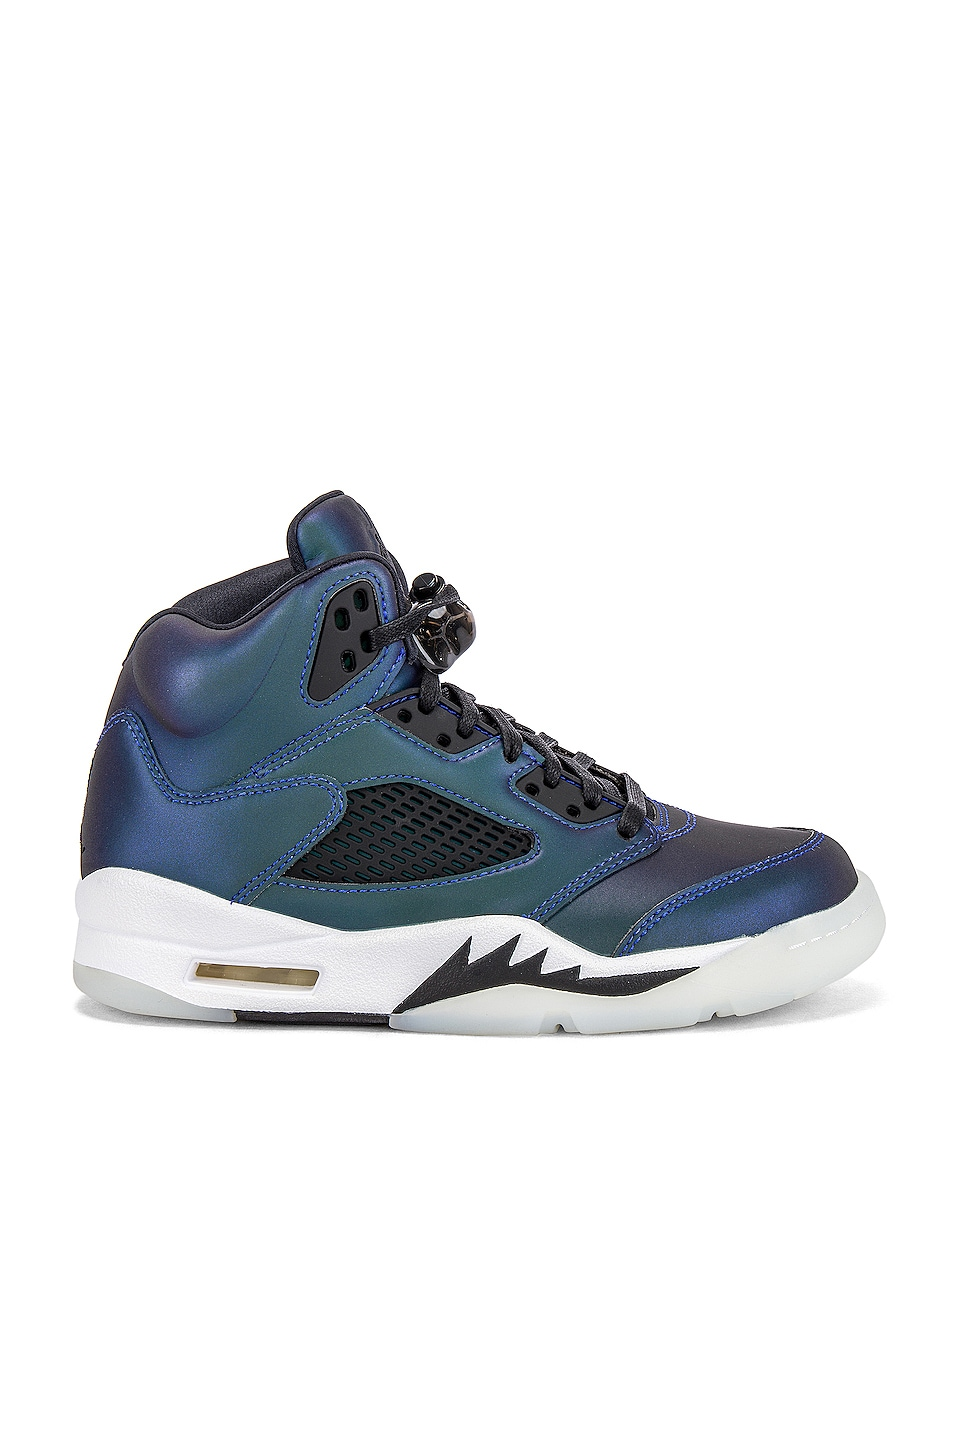 Jordan Air Jordan 5 Retro Sneaker in Oil Grey, Black & White